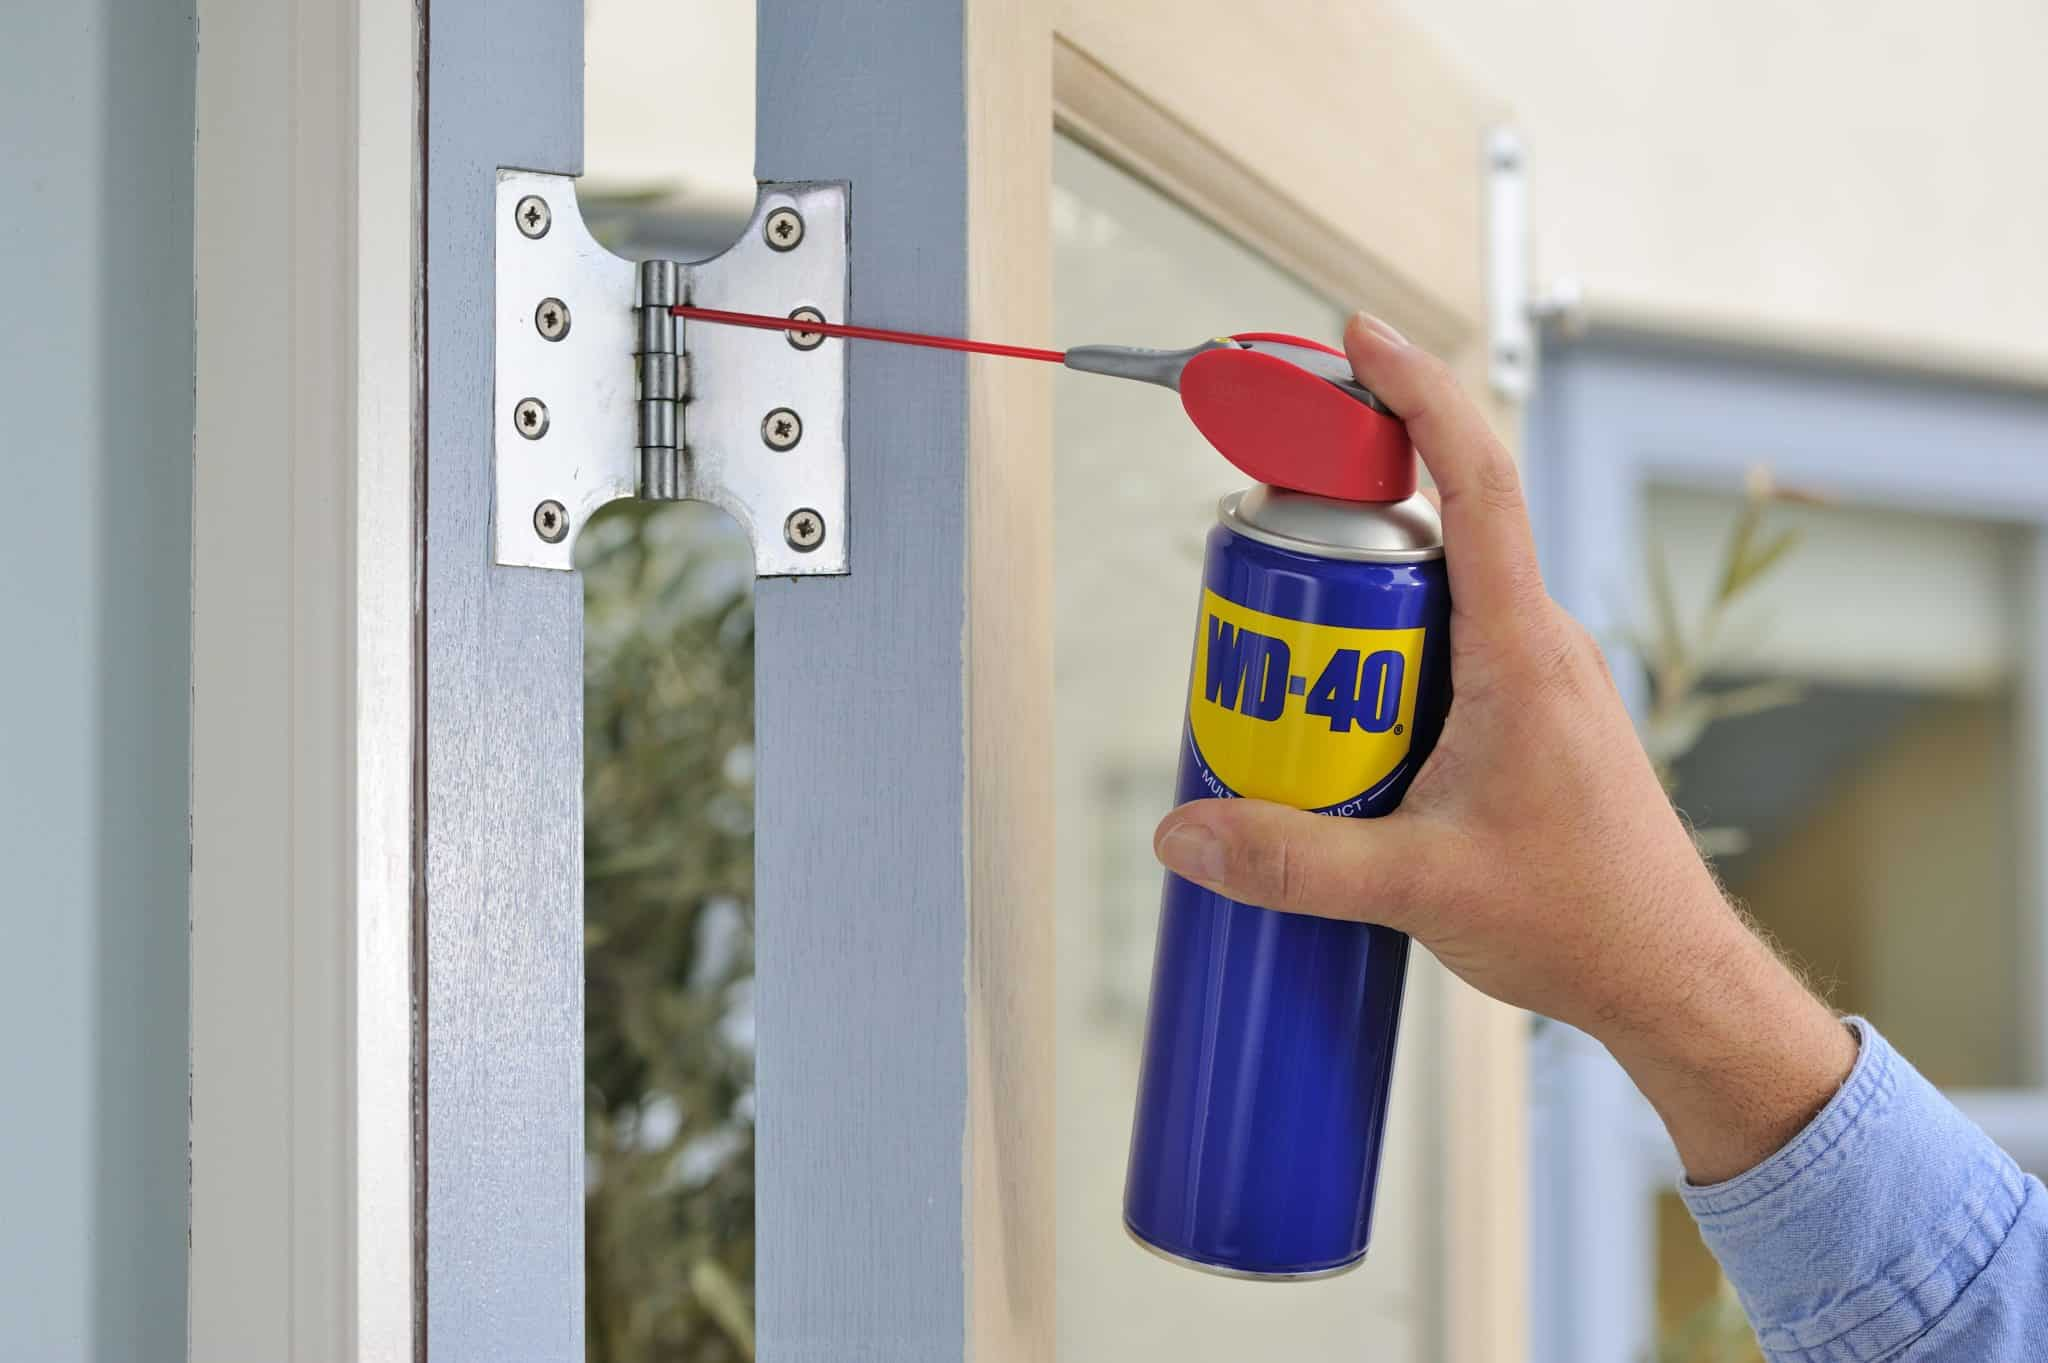 WD-40 multi use product usage